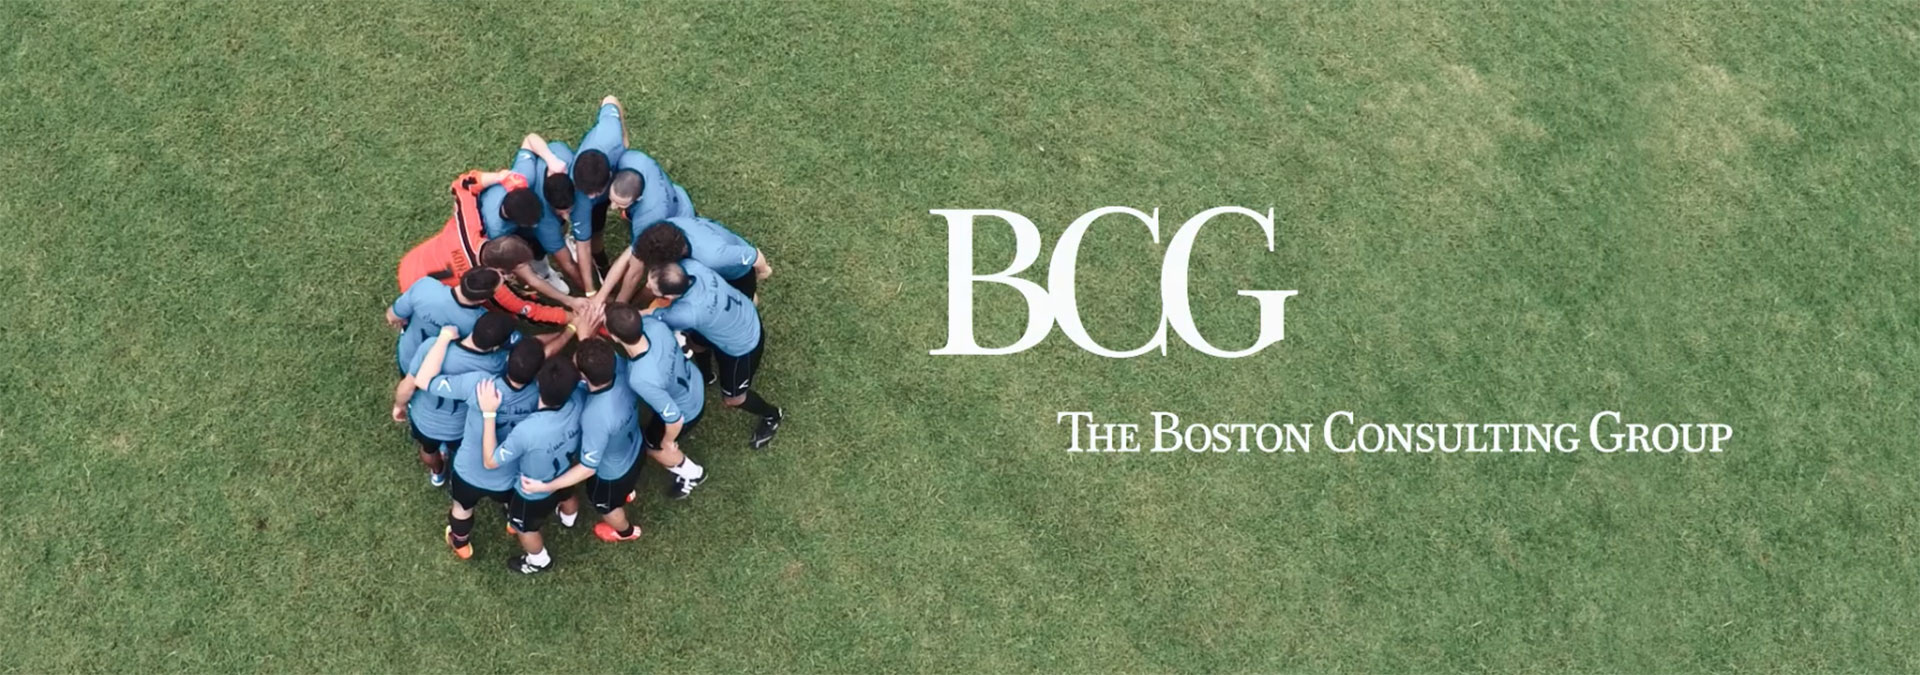 The Boston Consulting